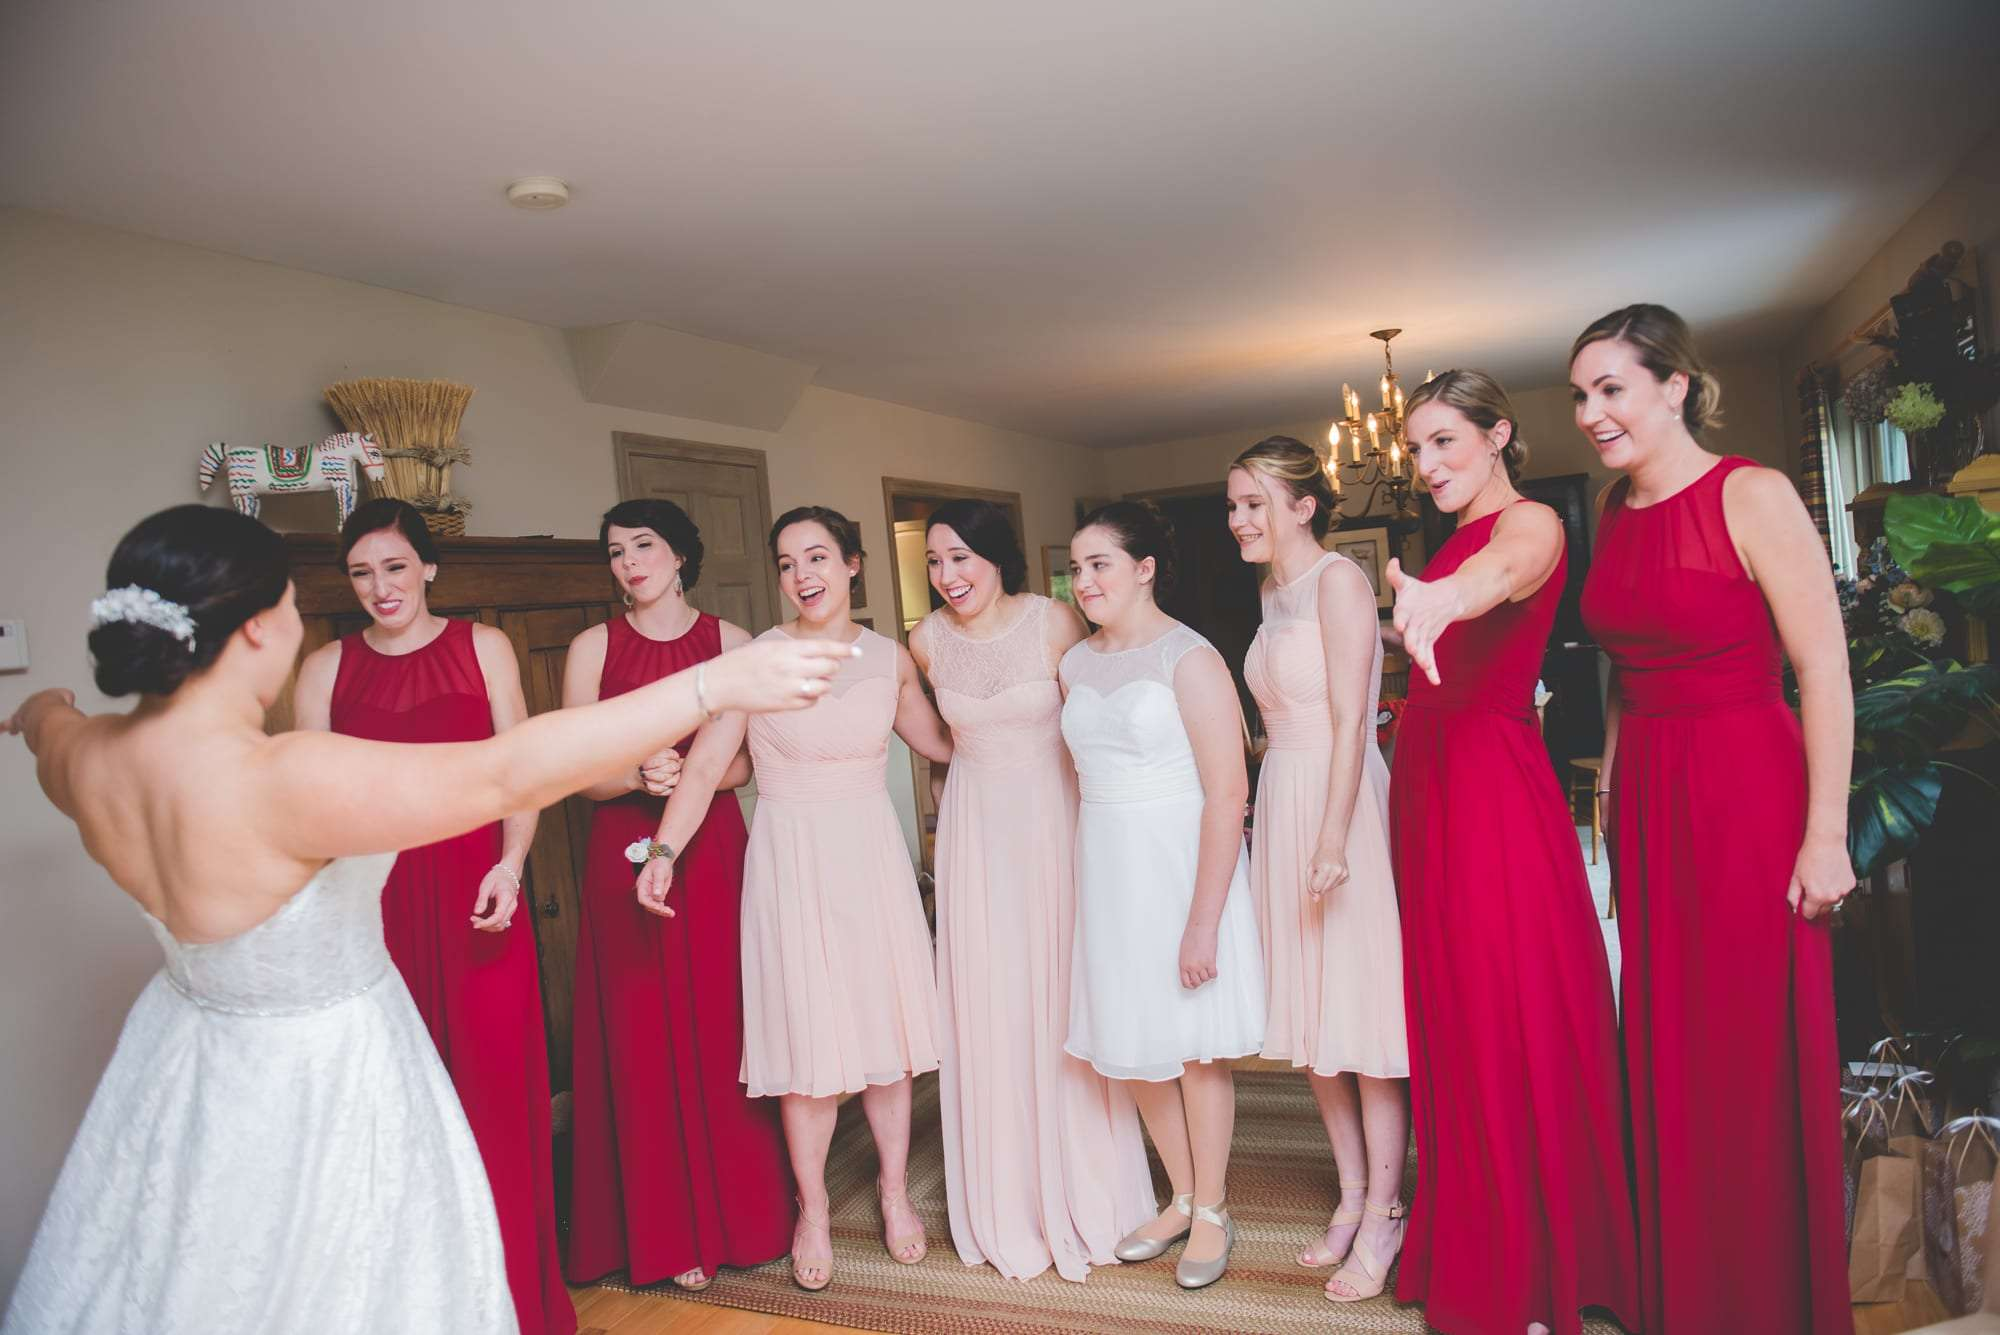 Bridesmaids seeing bride in dress VT wedding photographer